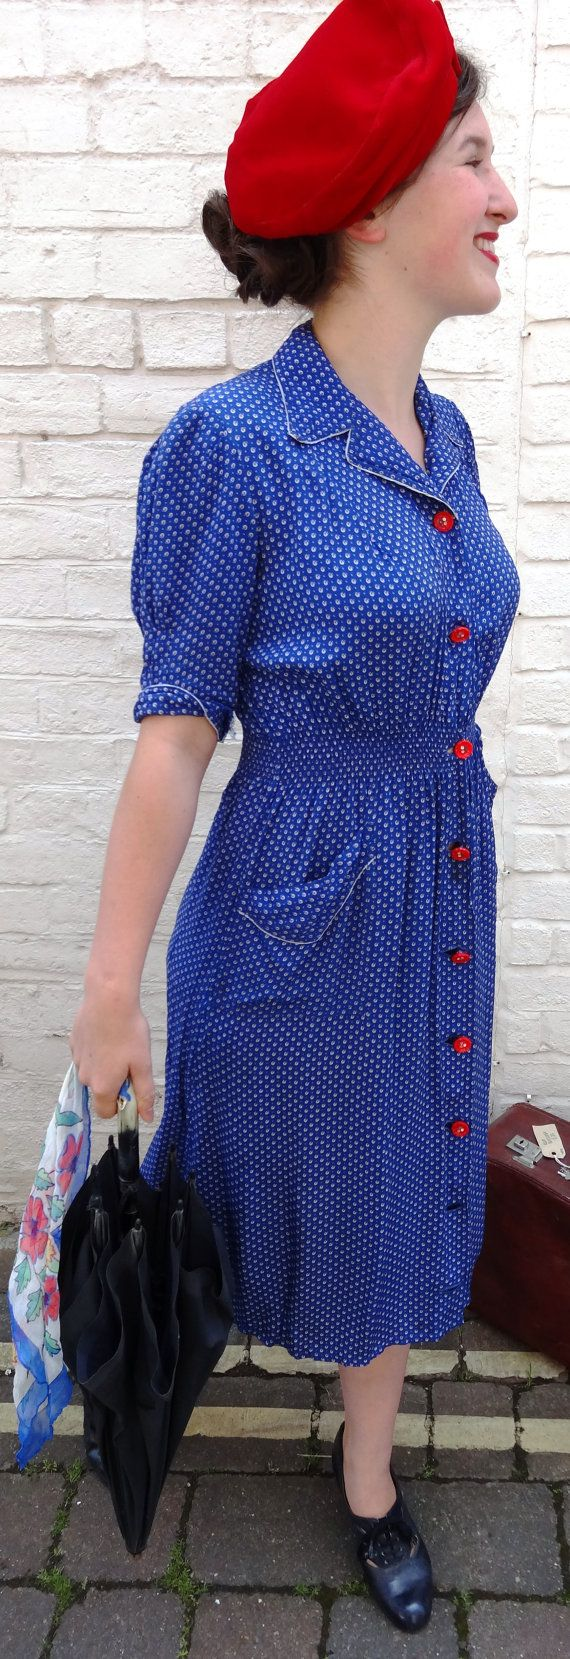 1940s Dress (UK 8-10) - Blue And Red 40s Dress - Genuine Original Vintage Forties Dress - Bust 36 ins  Waist 24 ins